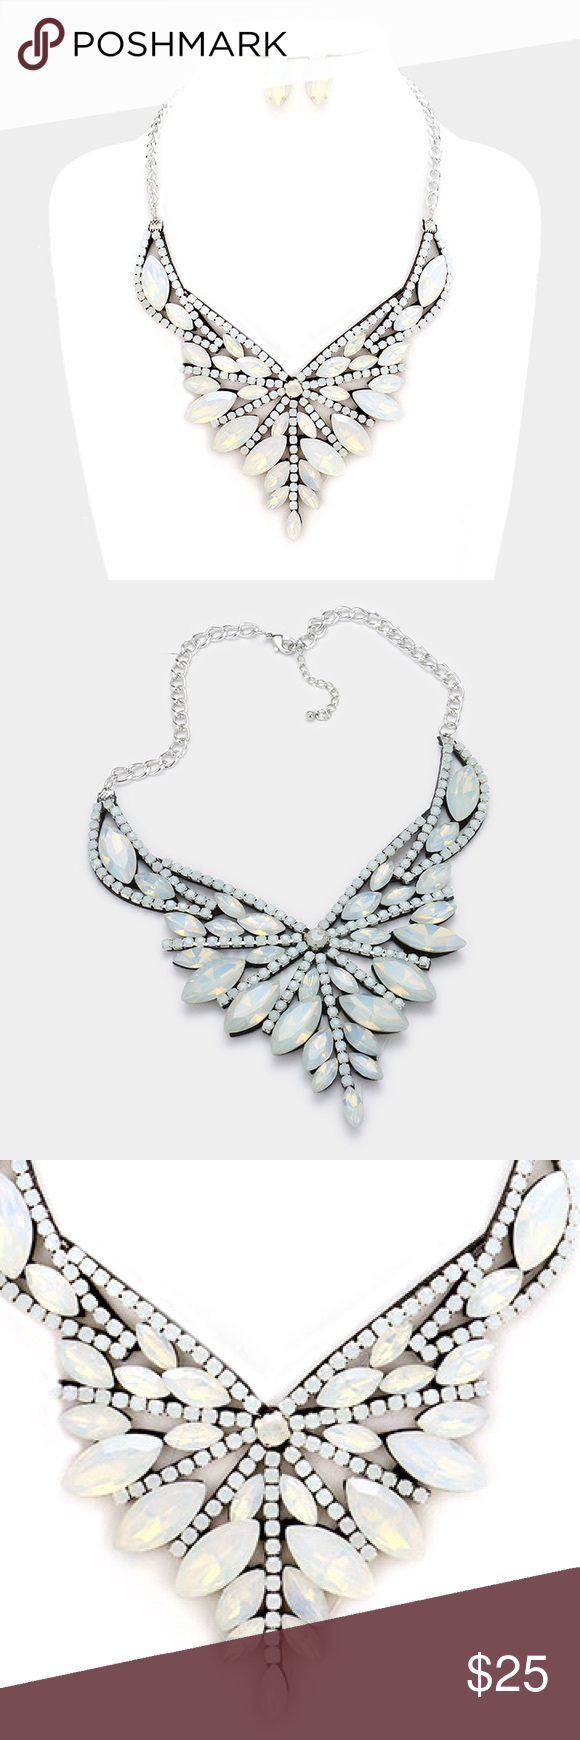 "Crystal Statement Necklace Set • Necklace Size : 18"" + 2"" L • Decor Size : 3"" L • Earrings Size : 1.2"" L • Felt back marquise crystal rhinestone statement evening necklace Jewelry Necklaces"